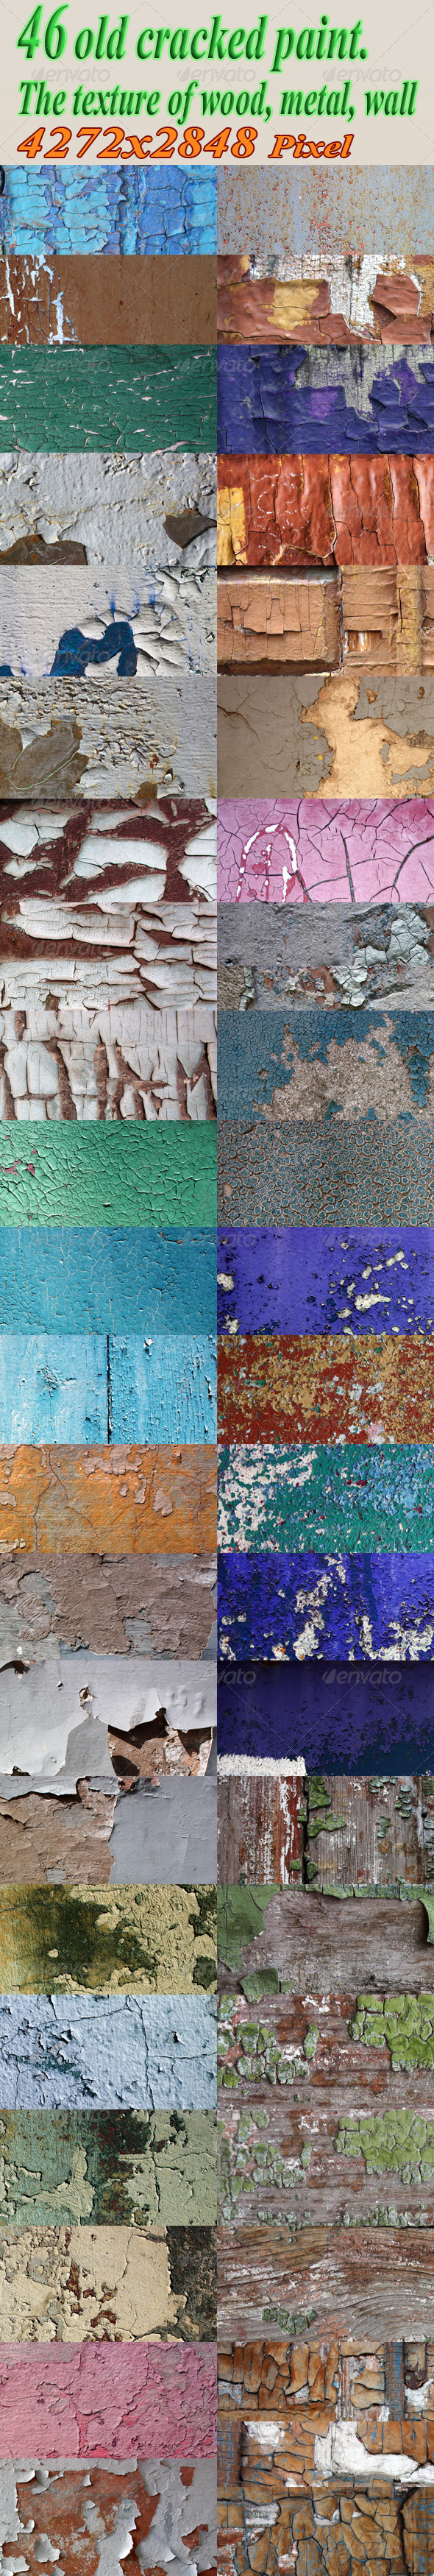 Abstract Old Grunge Cracked Paint Background Texture - Industrial / Grunge Textures